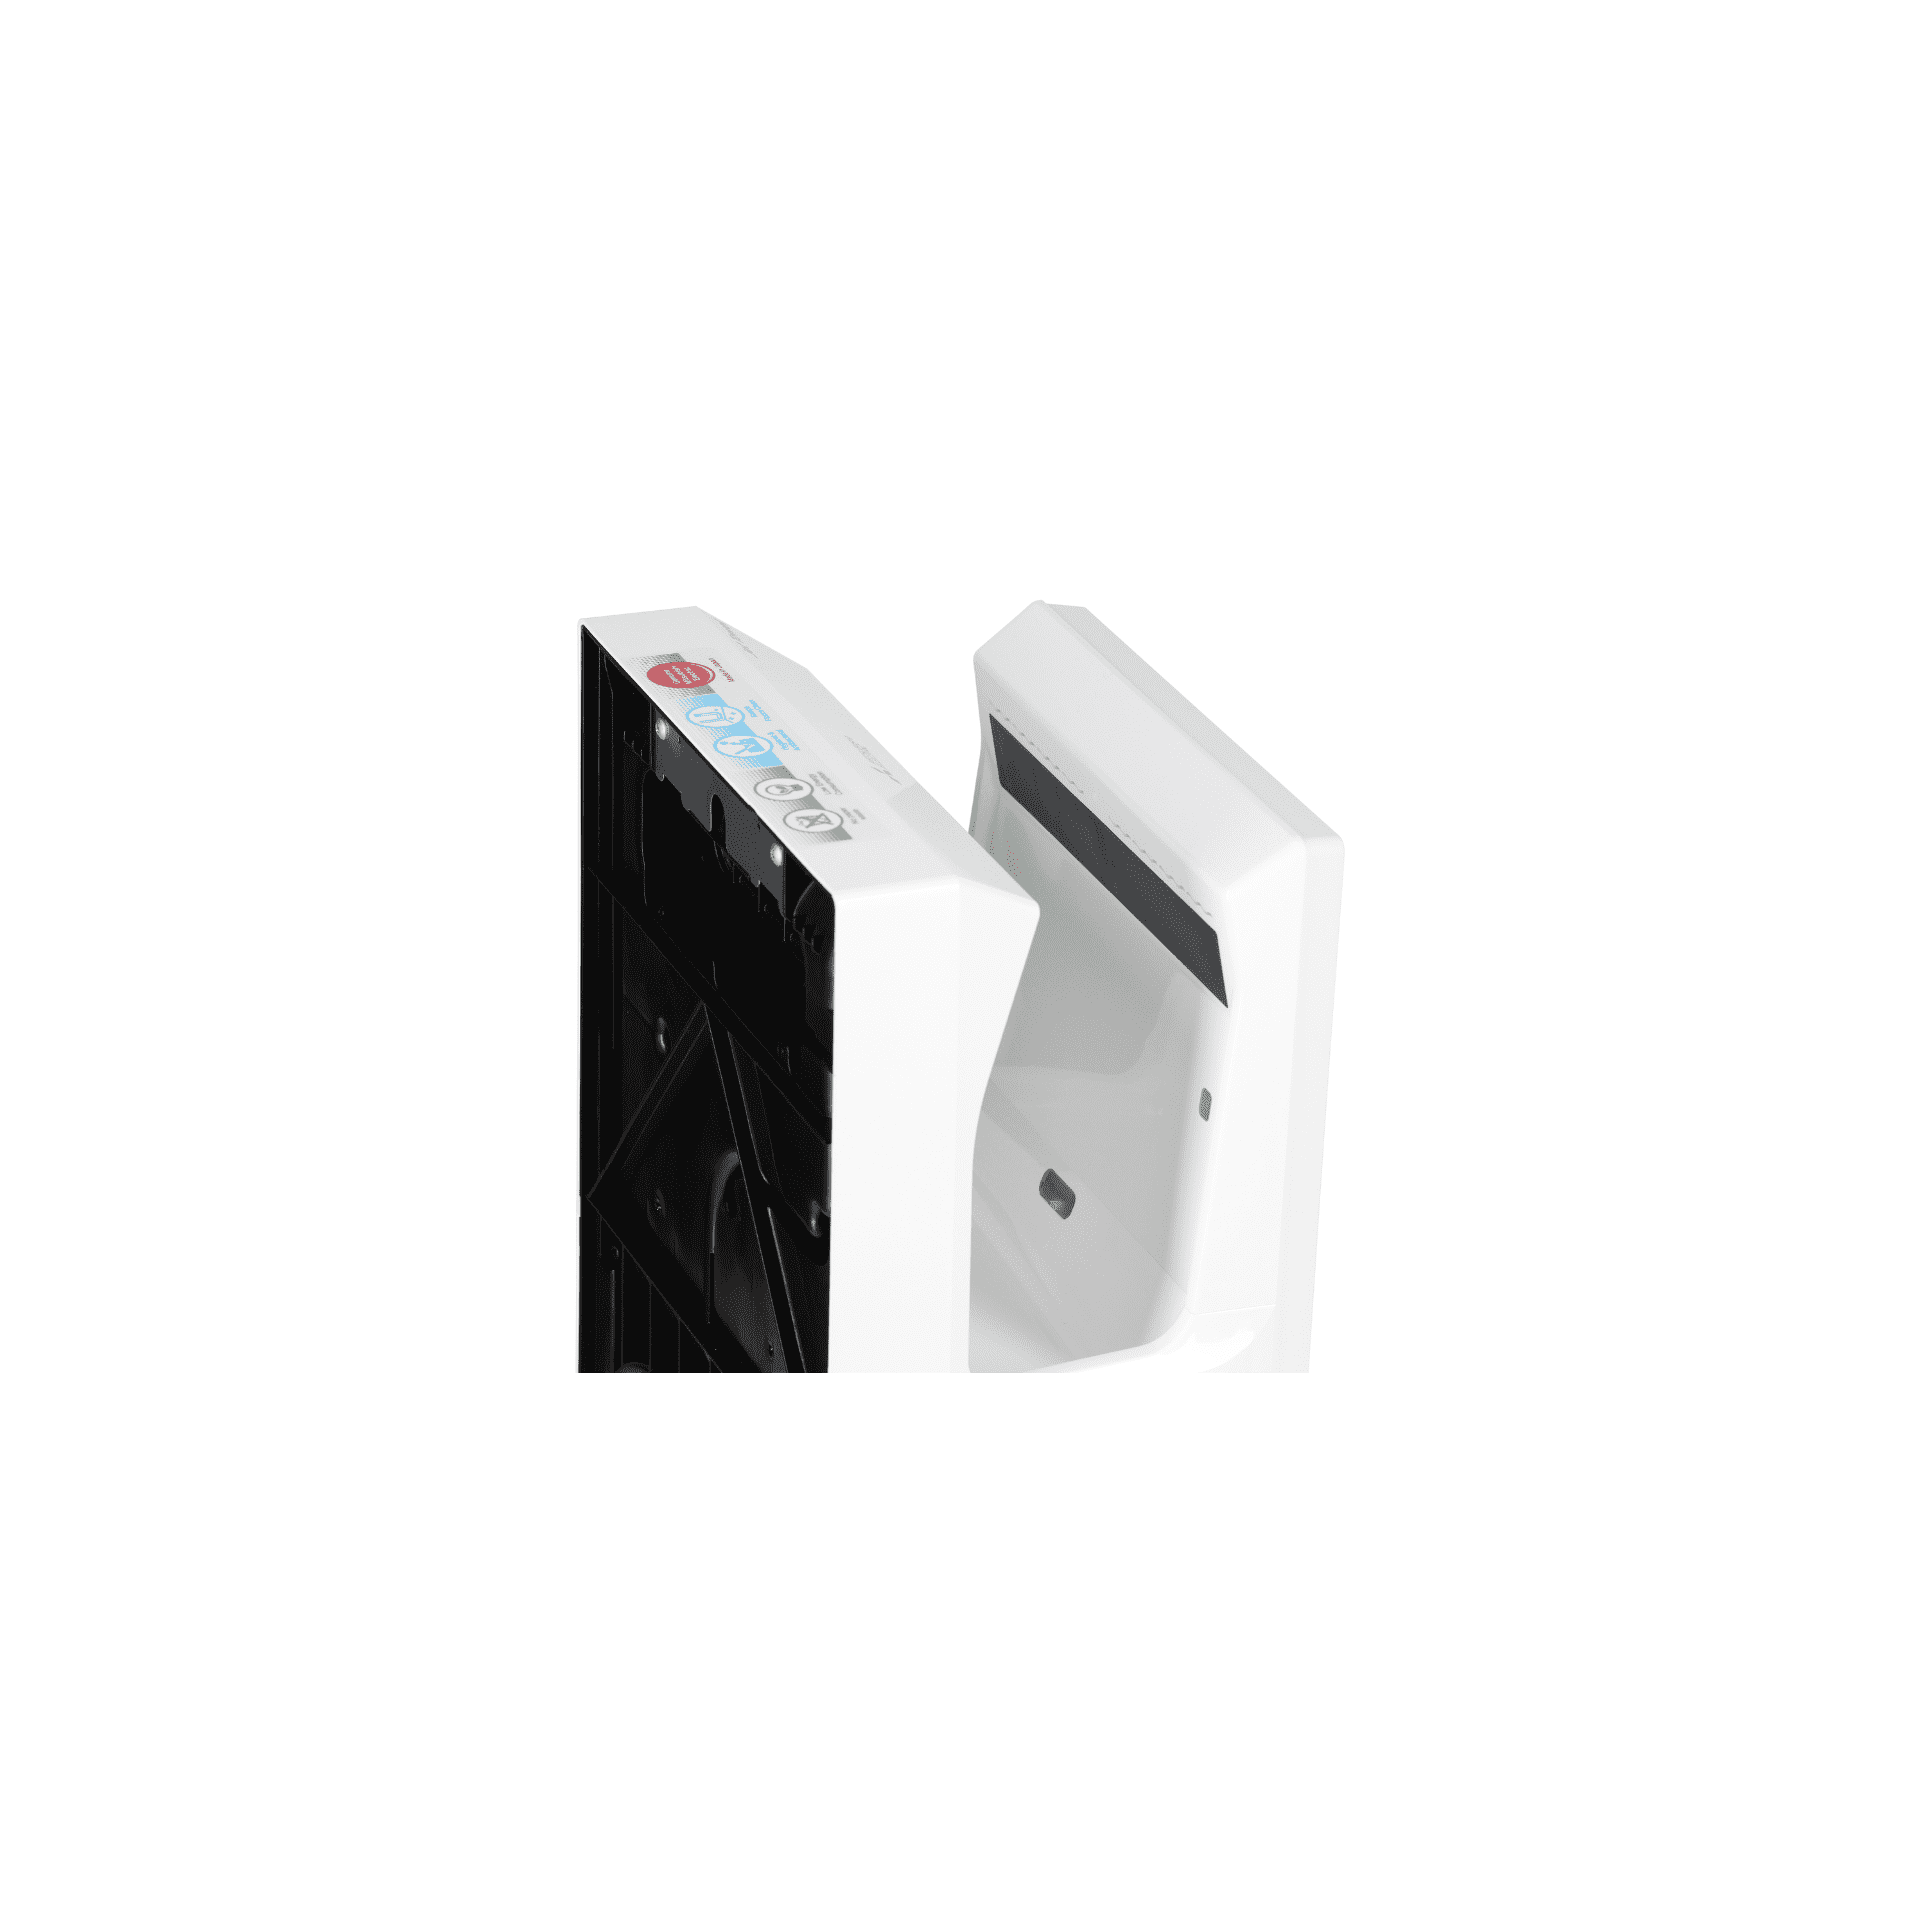 any a customisable intelligent dryer mitsubishi want jets blog colour to these quiet customise hand provide allow multiple dryers and air top hd you ffuuss the match